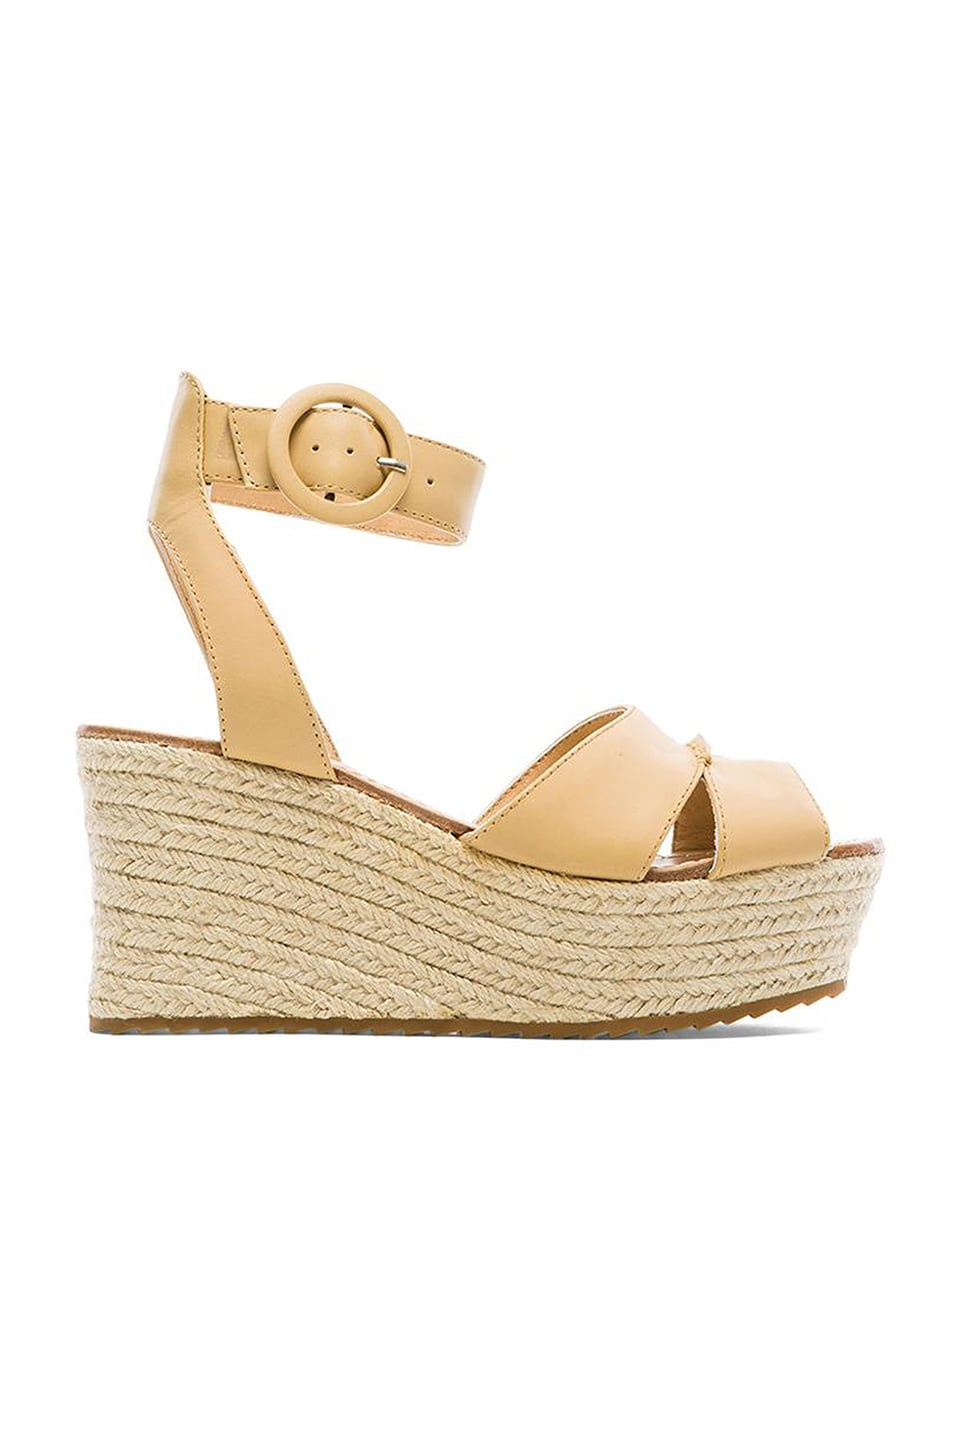 Alice + Olivia Roberta Vachetta Wedge in Tan